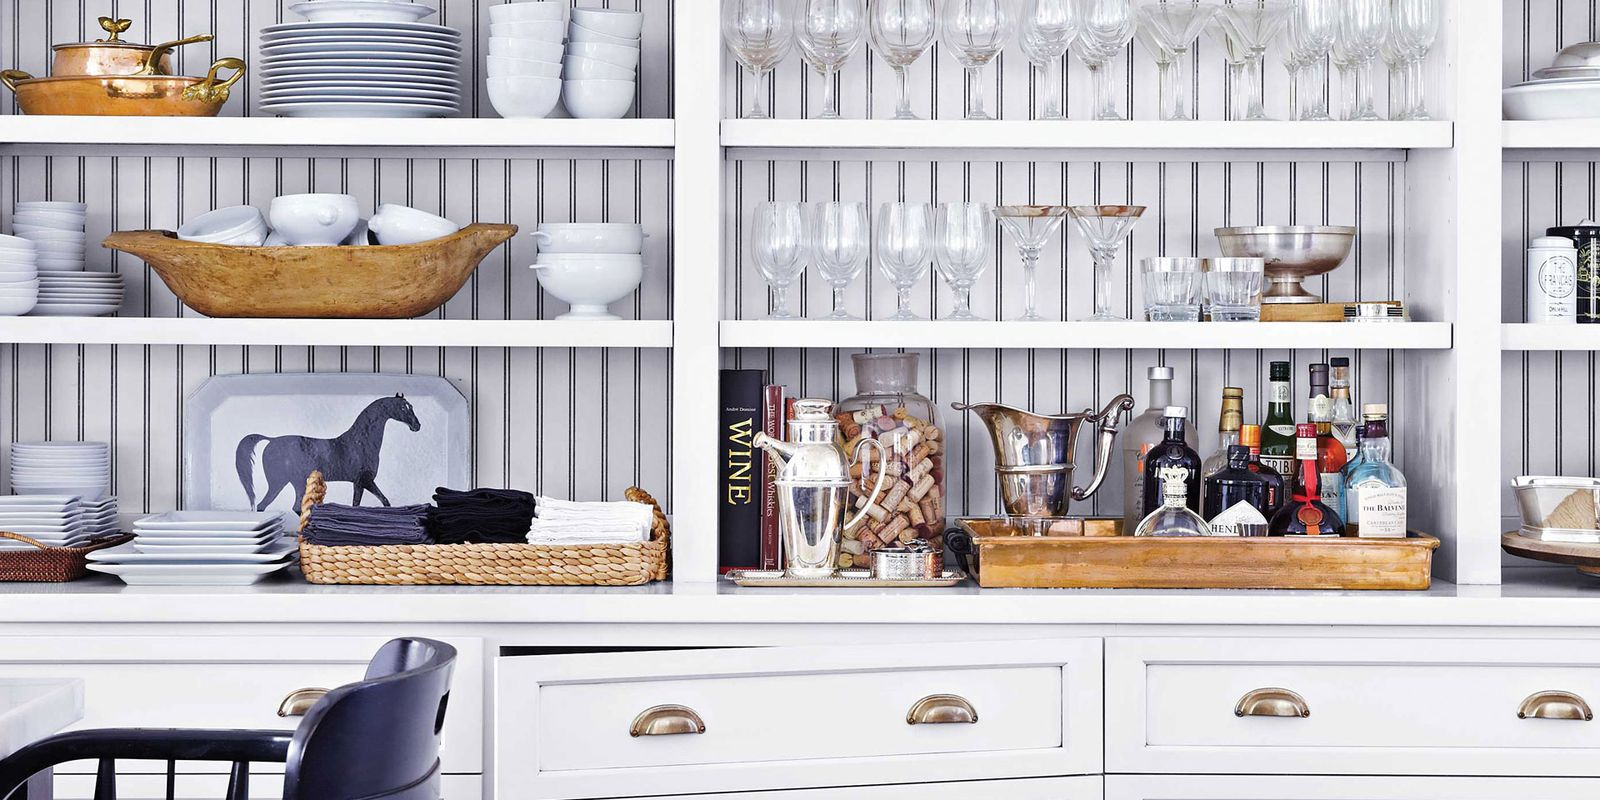 16 unique kitchen storage ideas kitchen organization tips for Unusual storage ideas